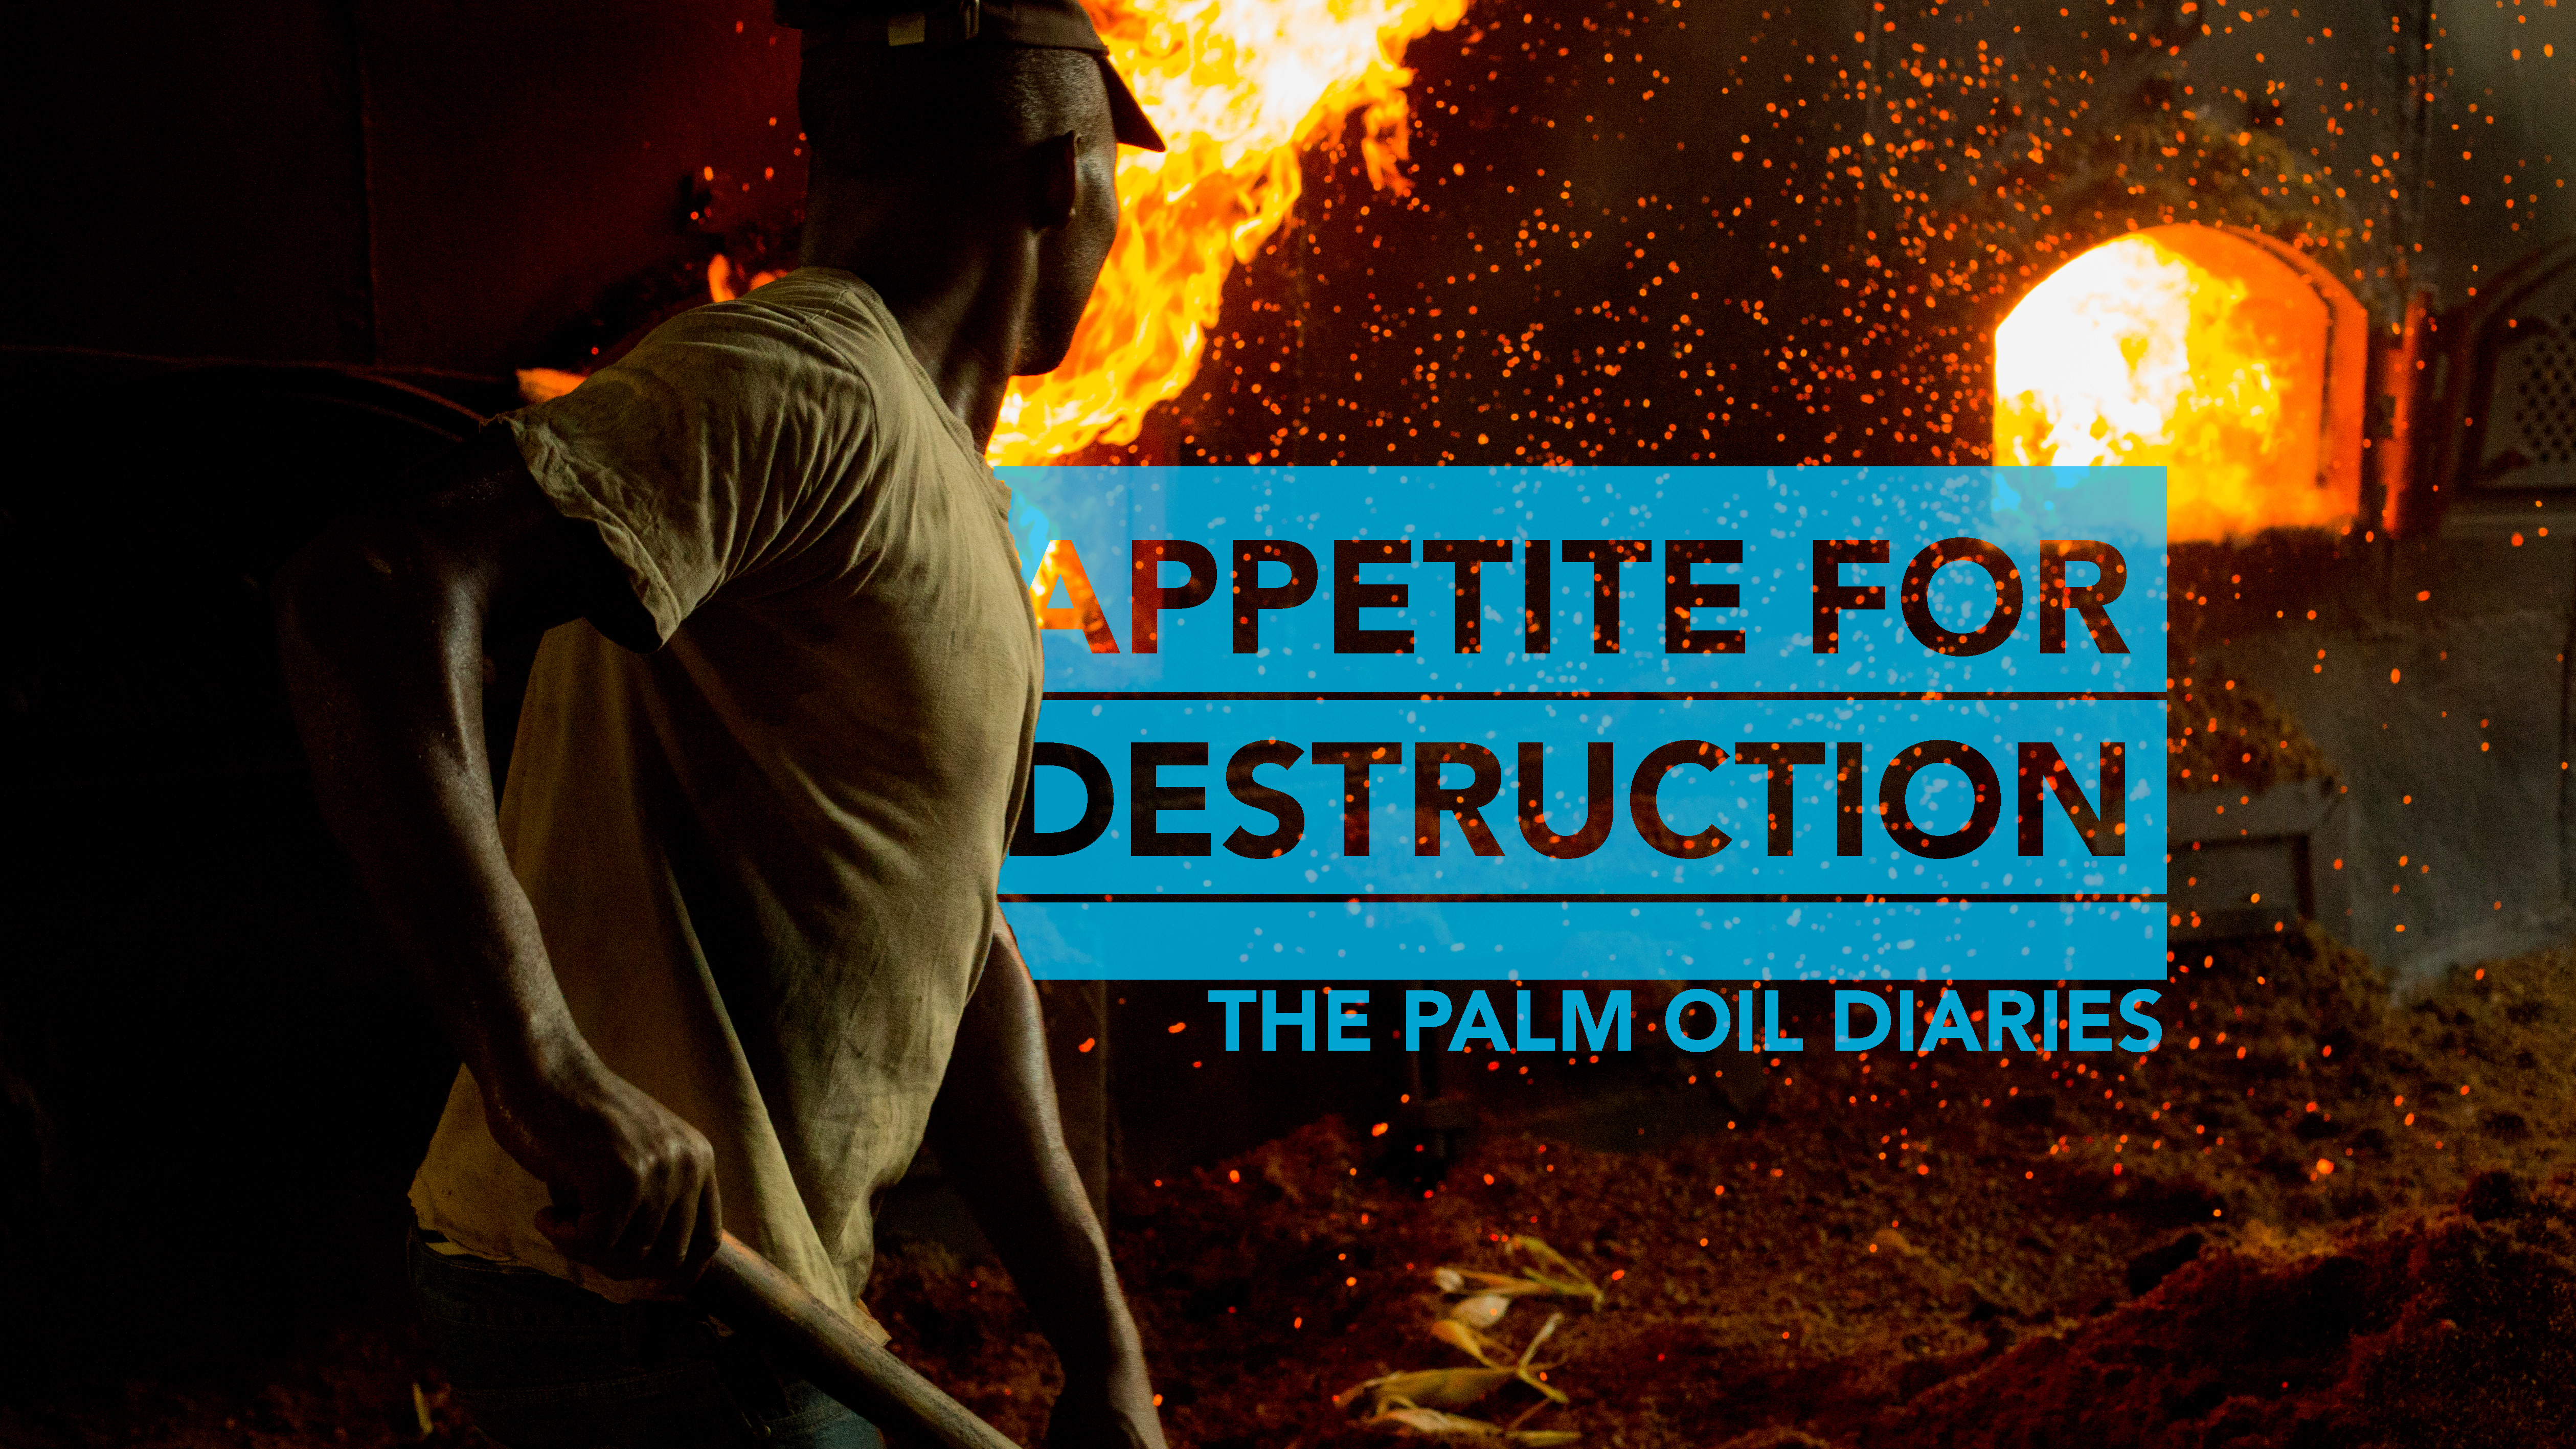 """The poster for Michael Dorgan's documentary, """"Appetite for Destruction: The Palm Oil Diaries."""" (Courtesy of Michael Dorgan)"""